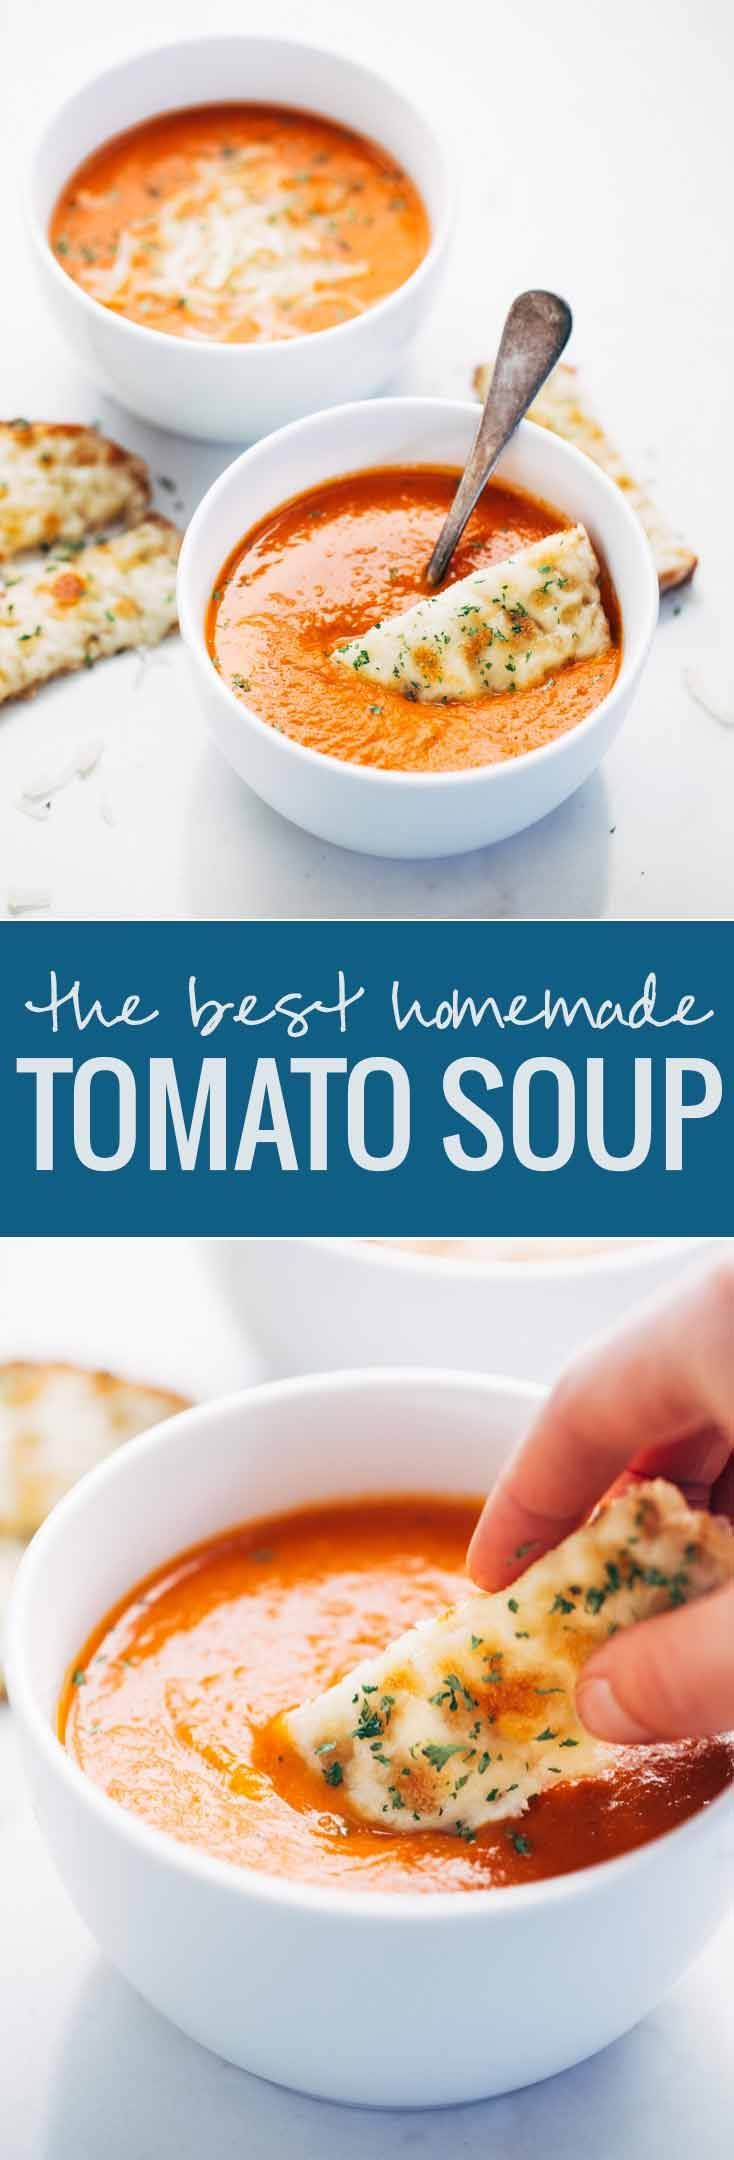 air Simple minutes just it pantry of jordans   Soup tomato and    ingredients homemade make takes hands on mid all is this Homemade   soup  handful hare time Tomato to a INCREDIBLE